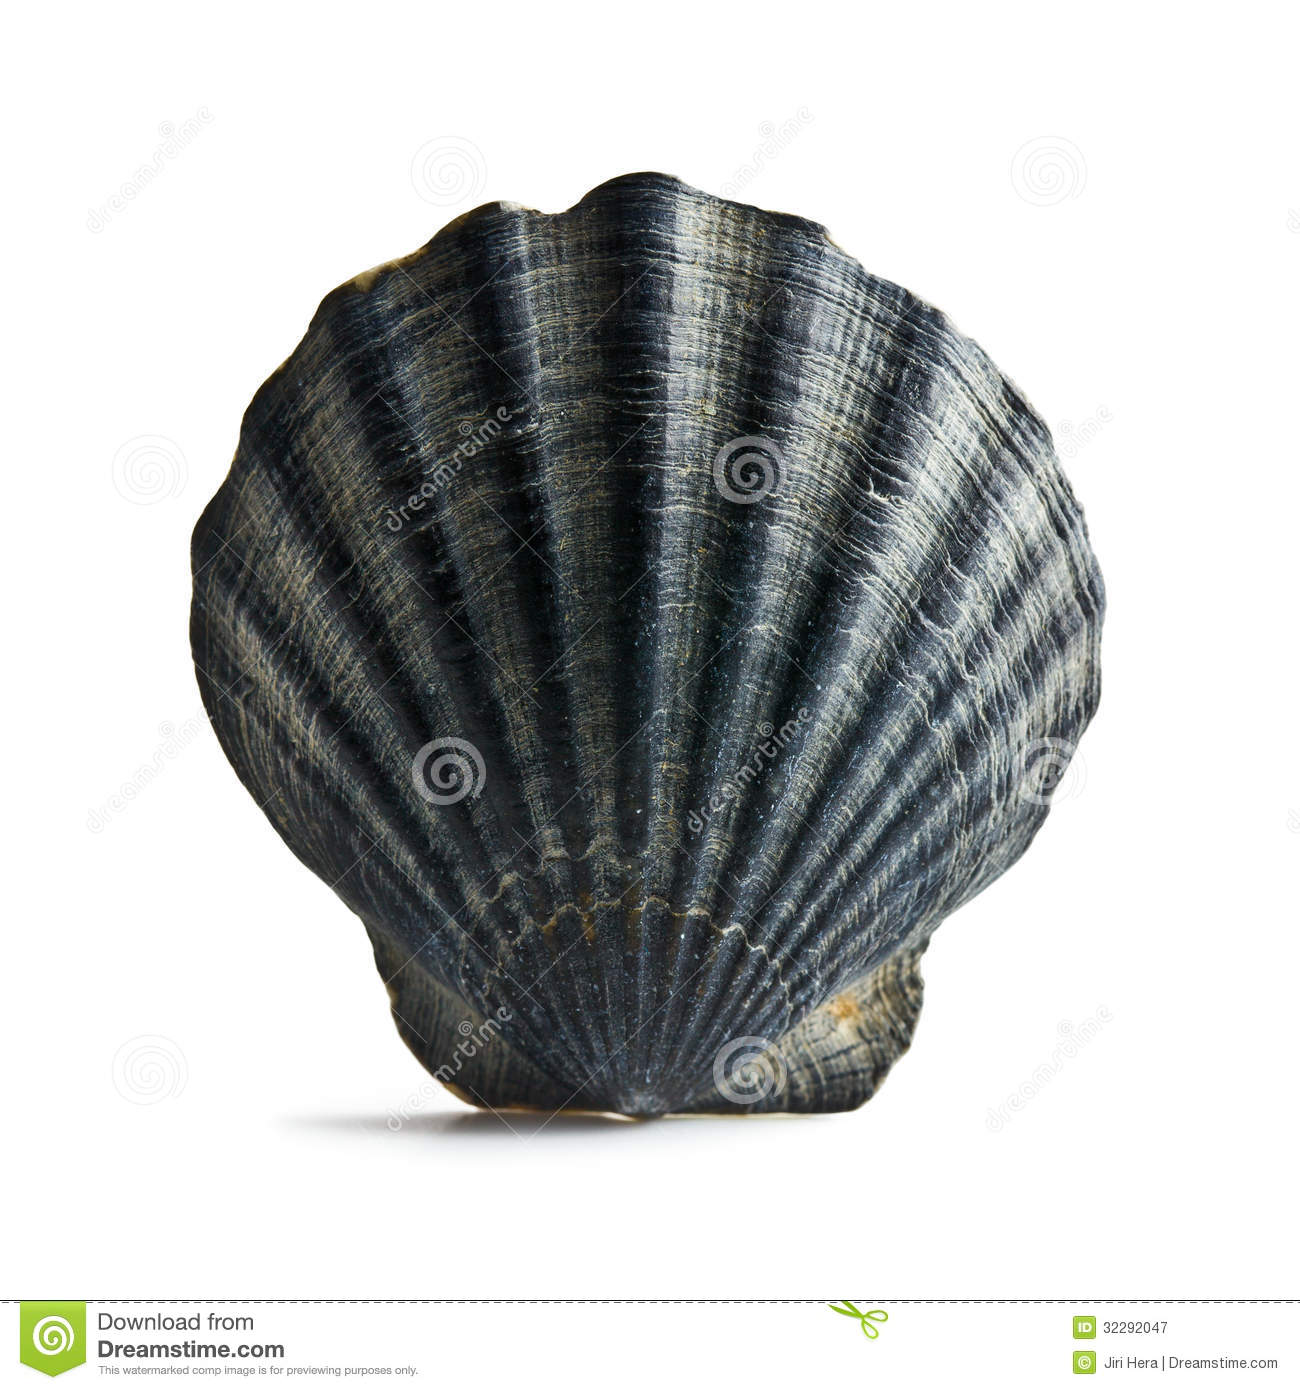 Black Sea Shell Royalty Free Stock Photography - Image: 32292047